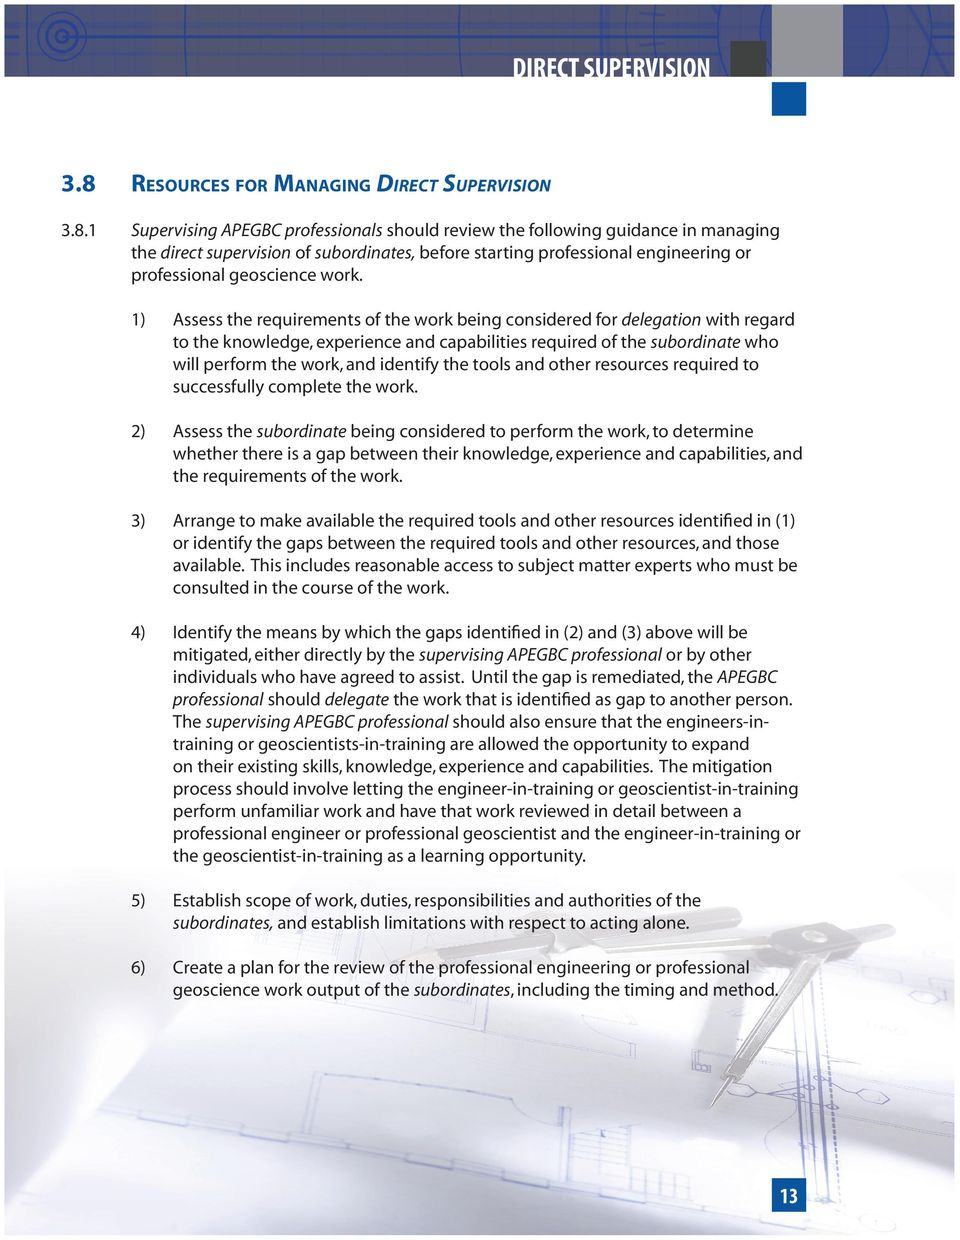 1 Supervising APEGBC professionals should review the following guidance in managing the direct supervision of subordinates, before starting professional engineering or professional geoscience work.